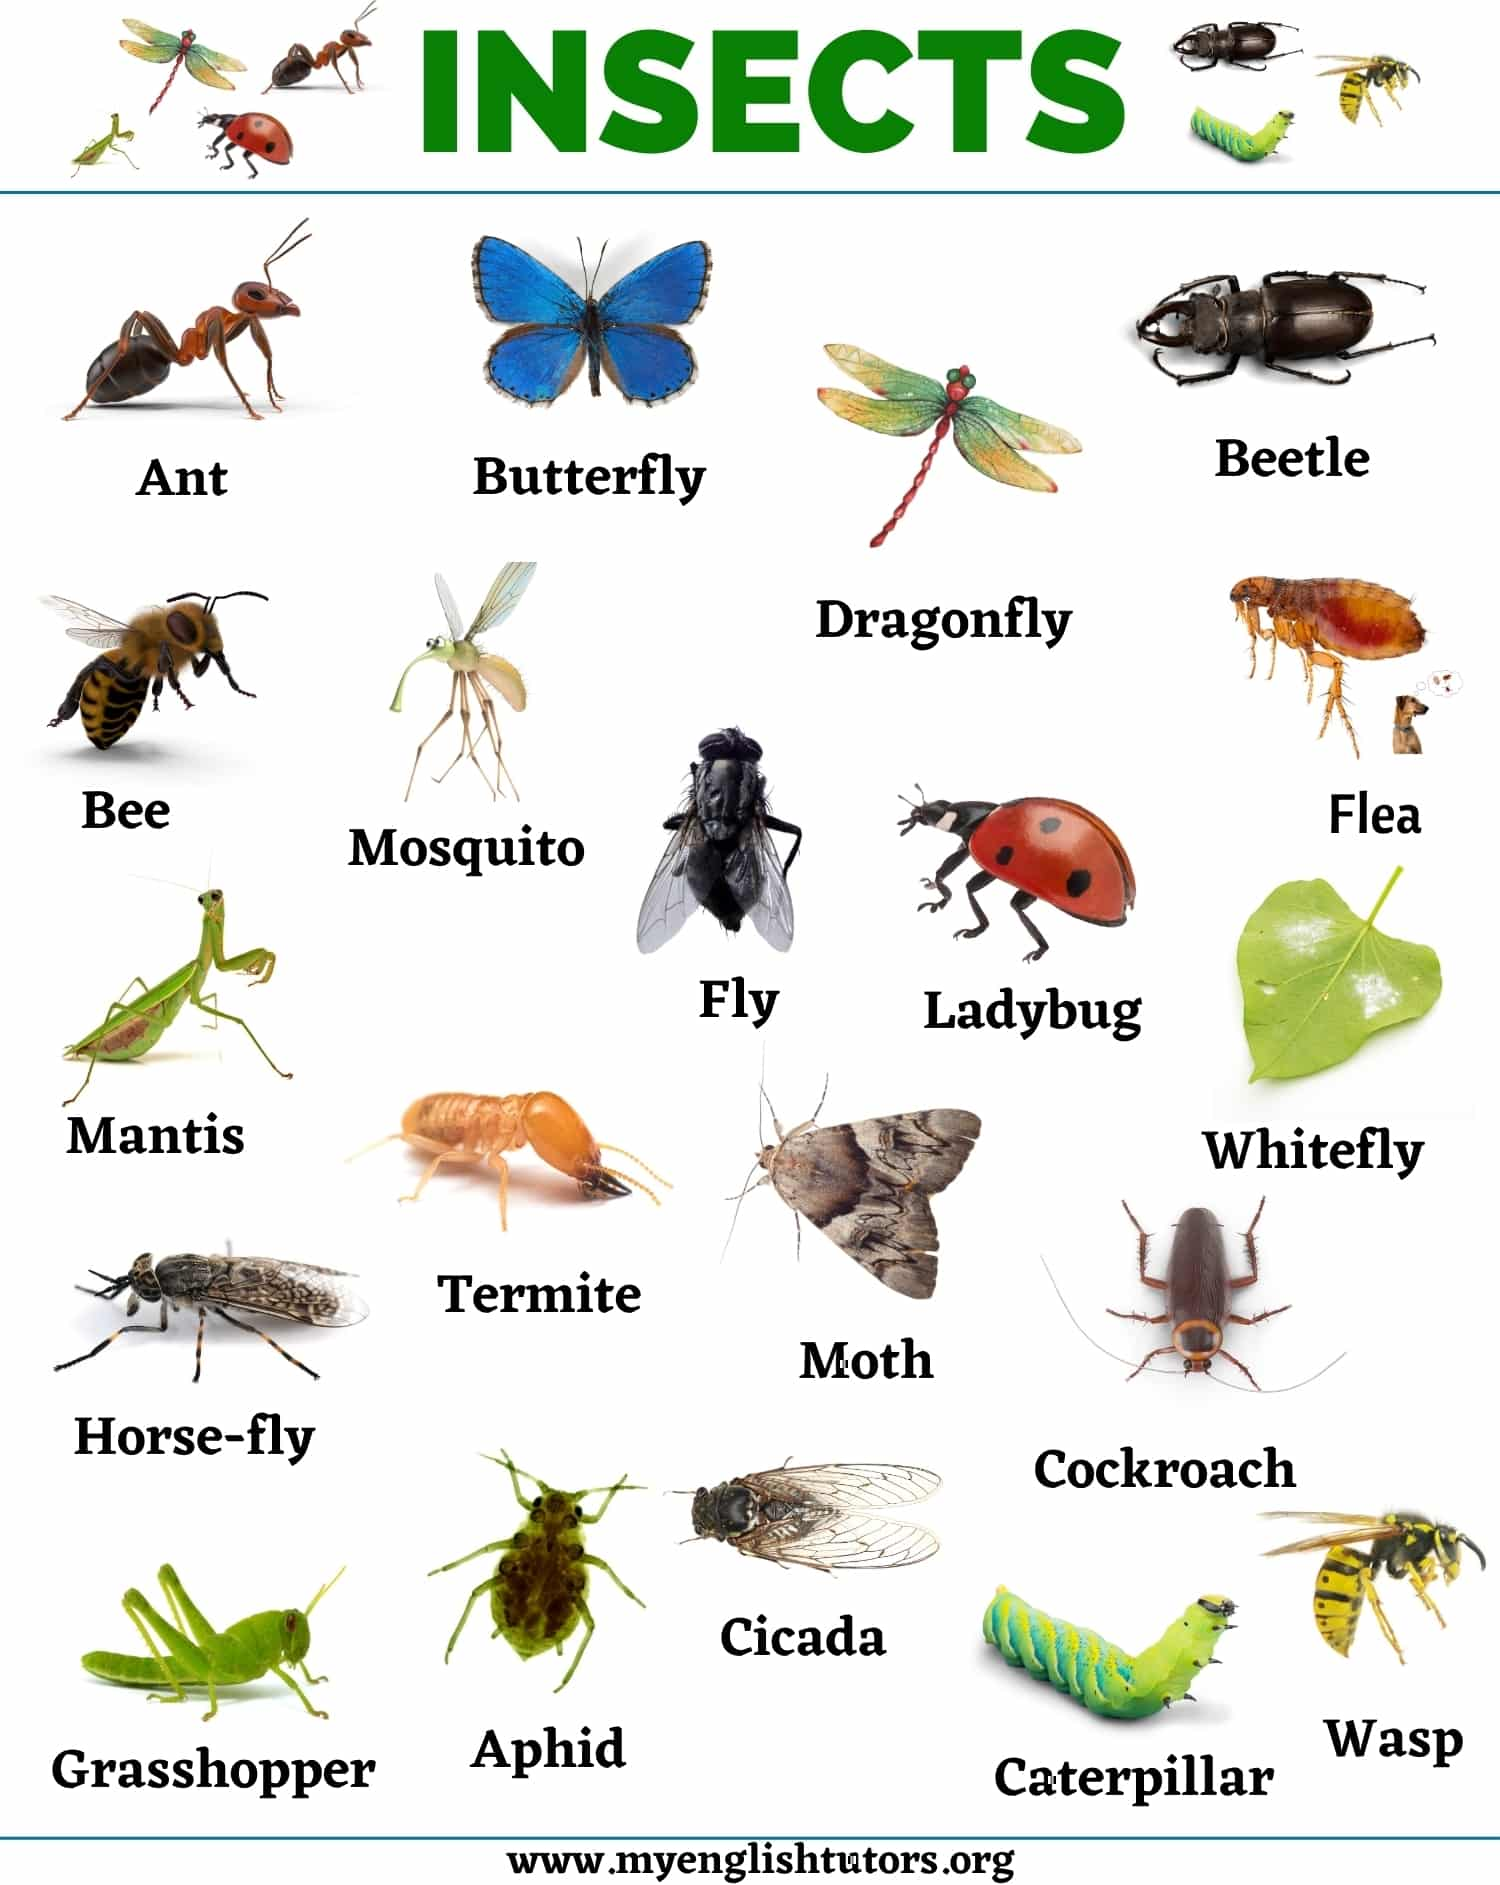 Insects: List of 20+ Names of Insects in English